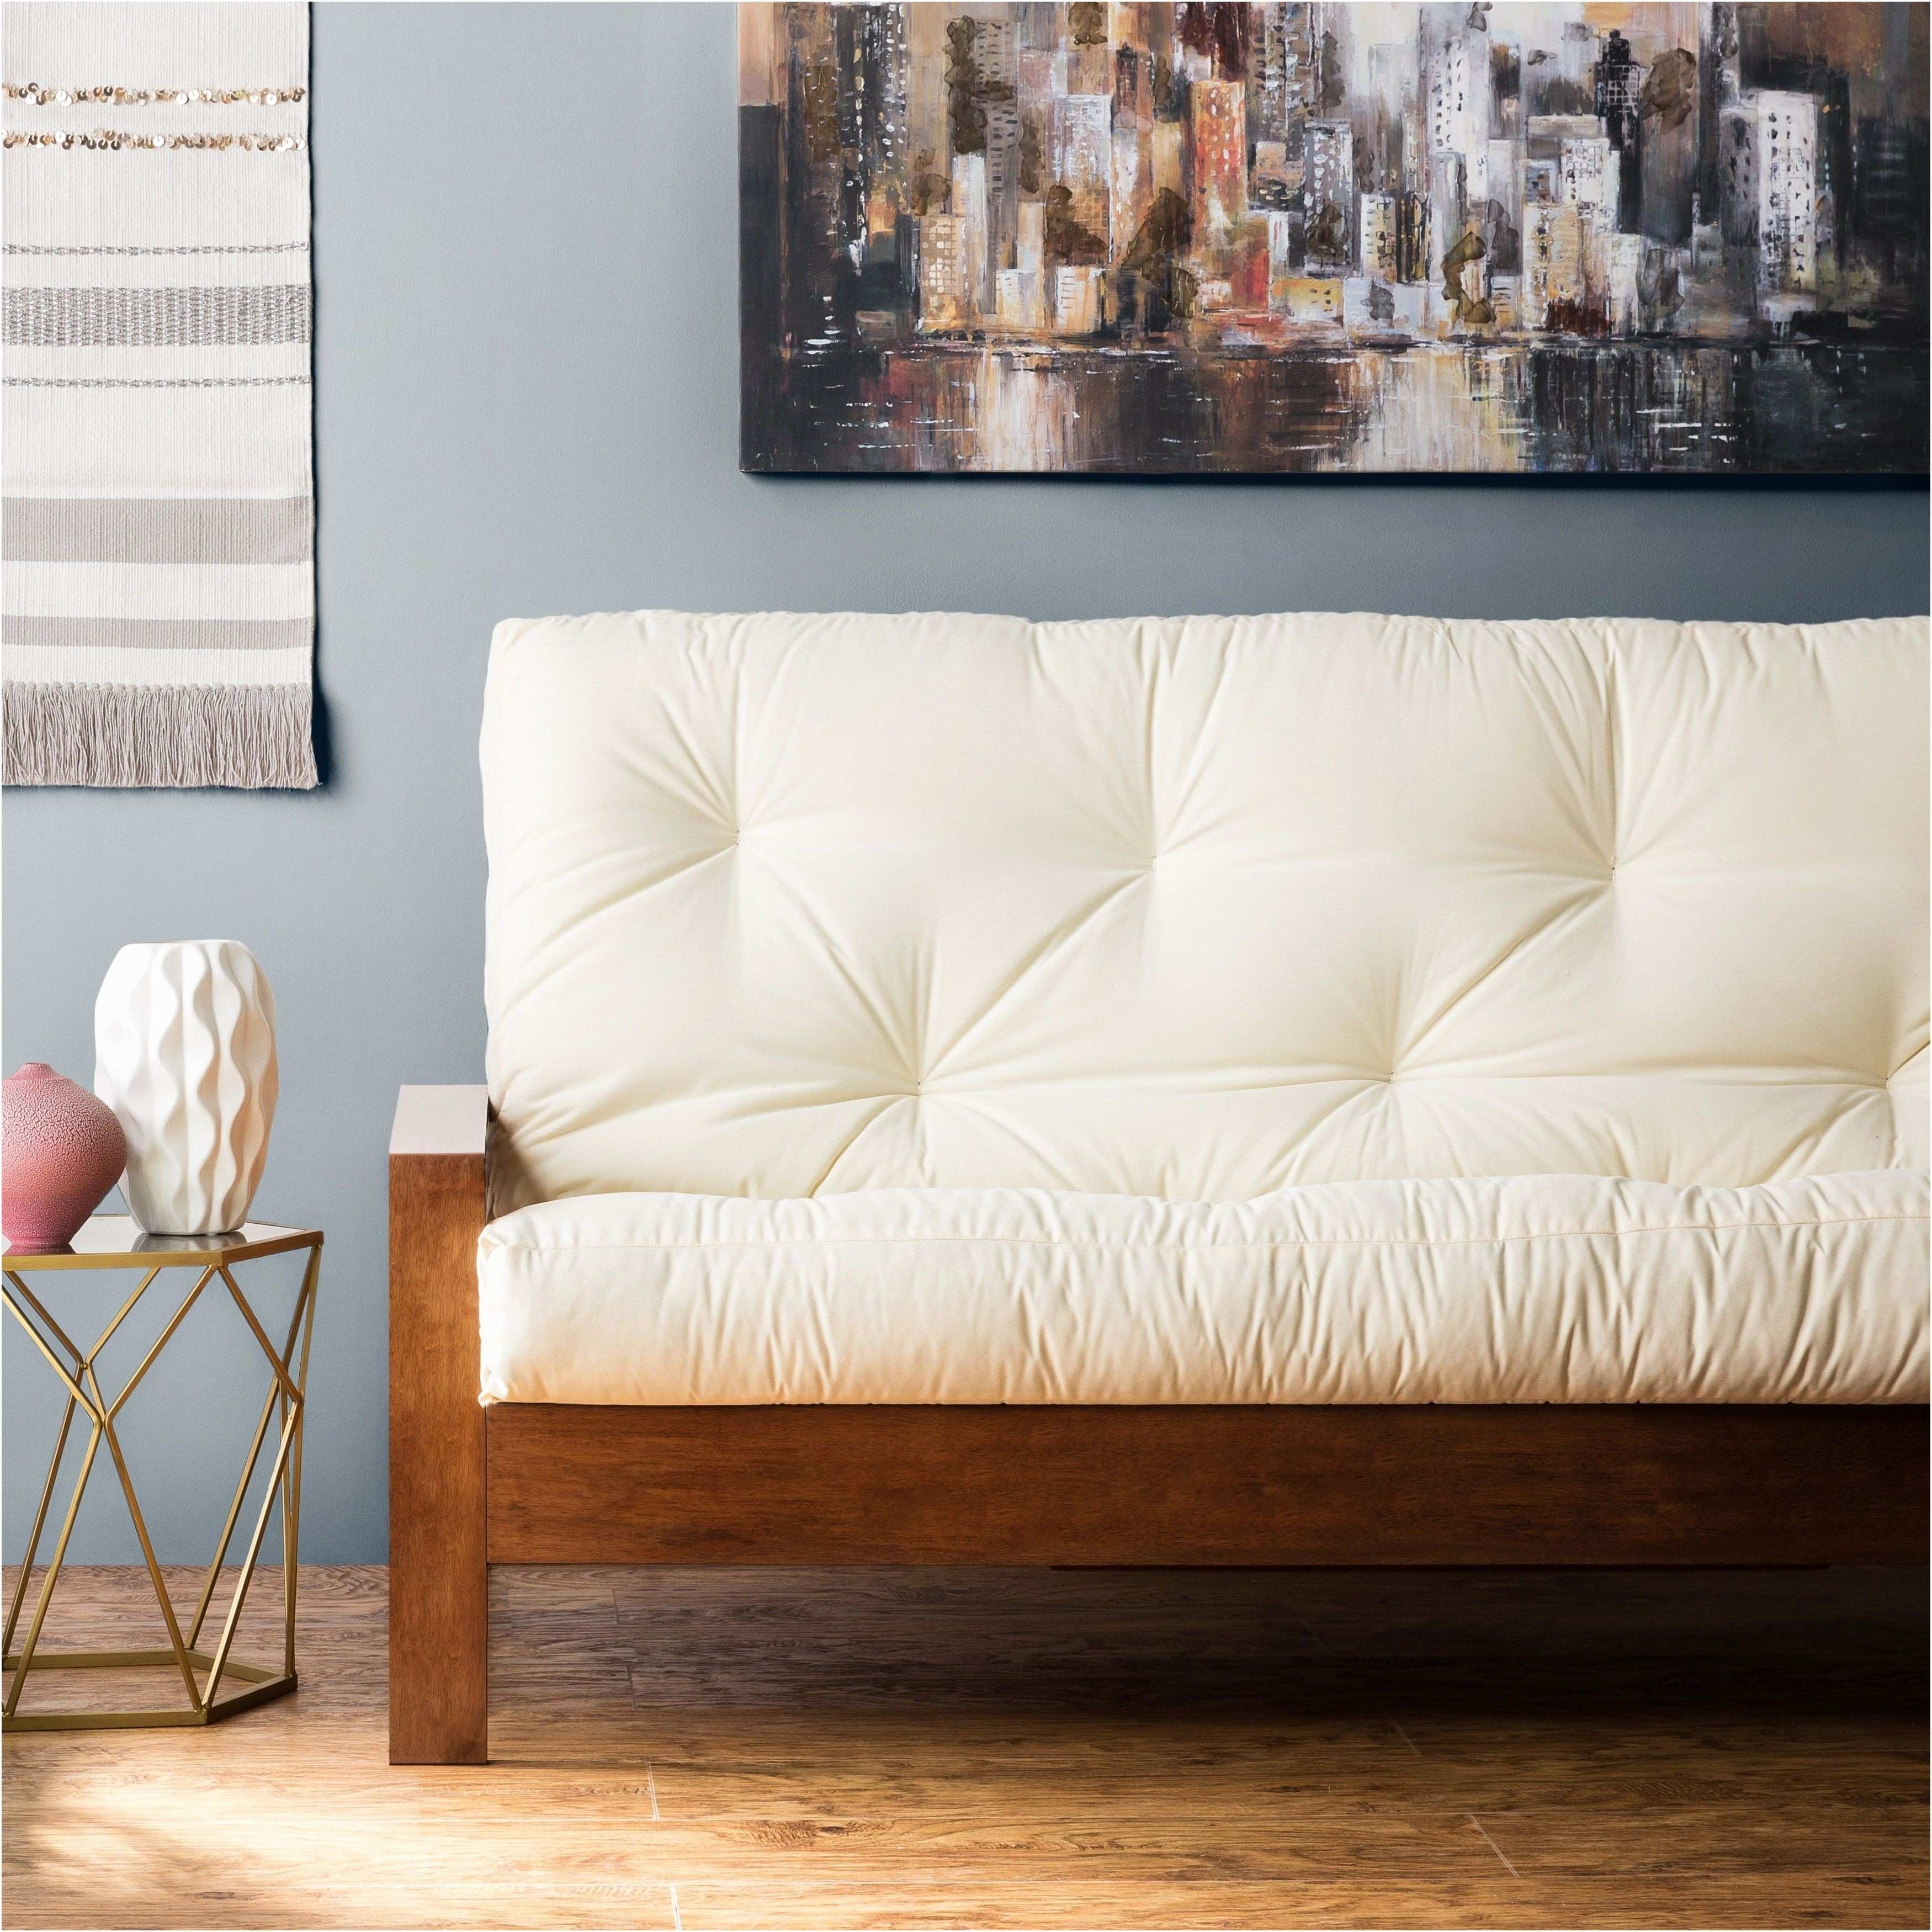 Home Design Ashley Furniture Futon Fresh 50 Luxury Clack Sofa Bed